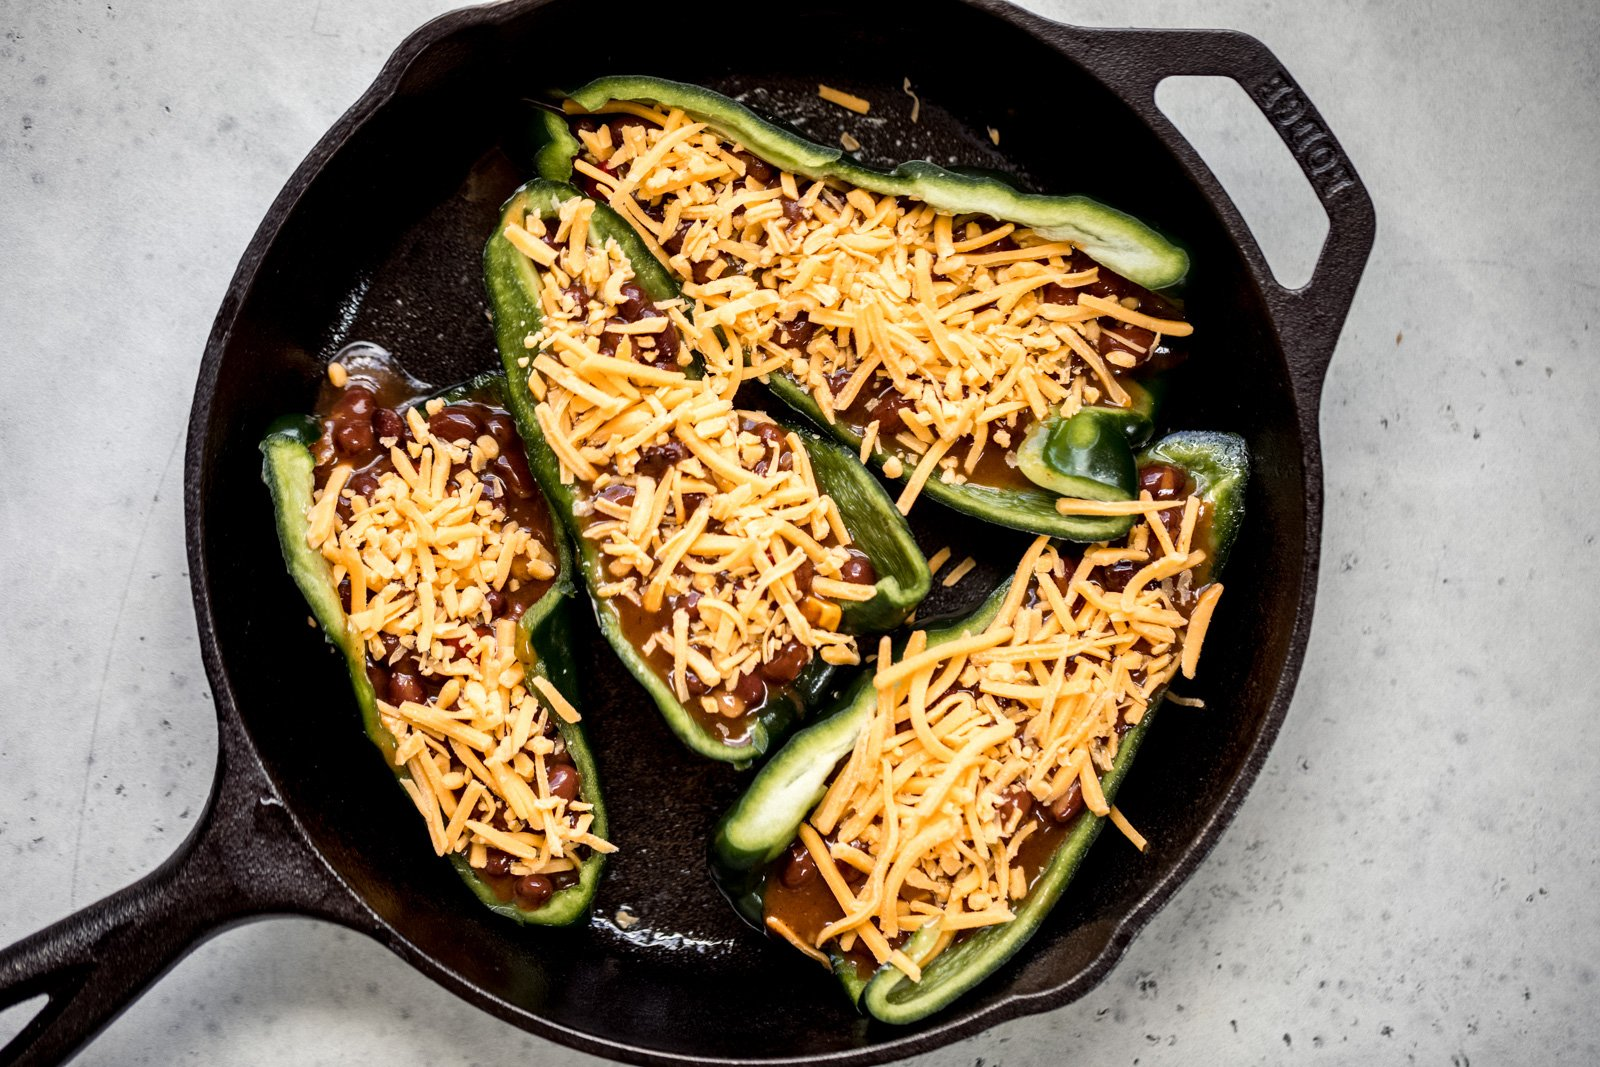 stuffed poblano peppers with beans and cheese in a cast iron skillet